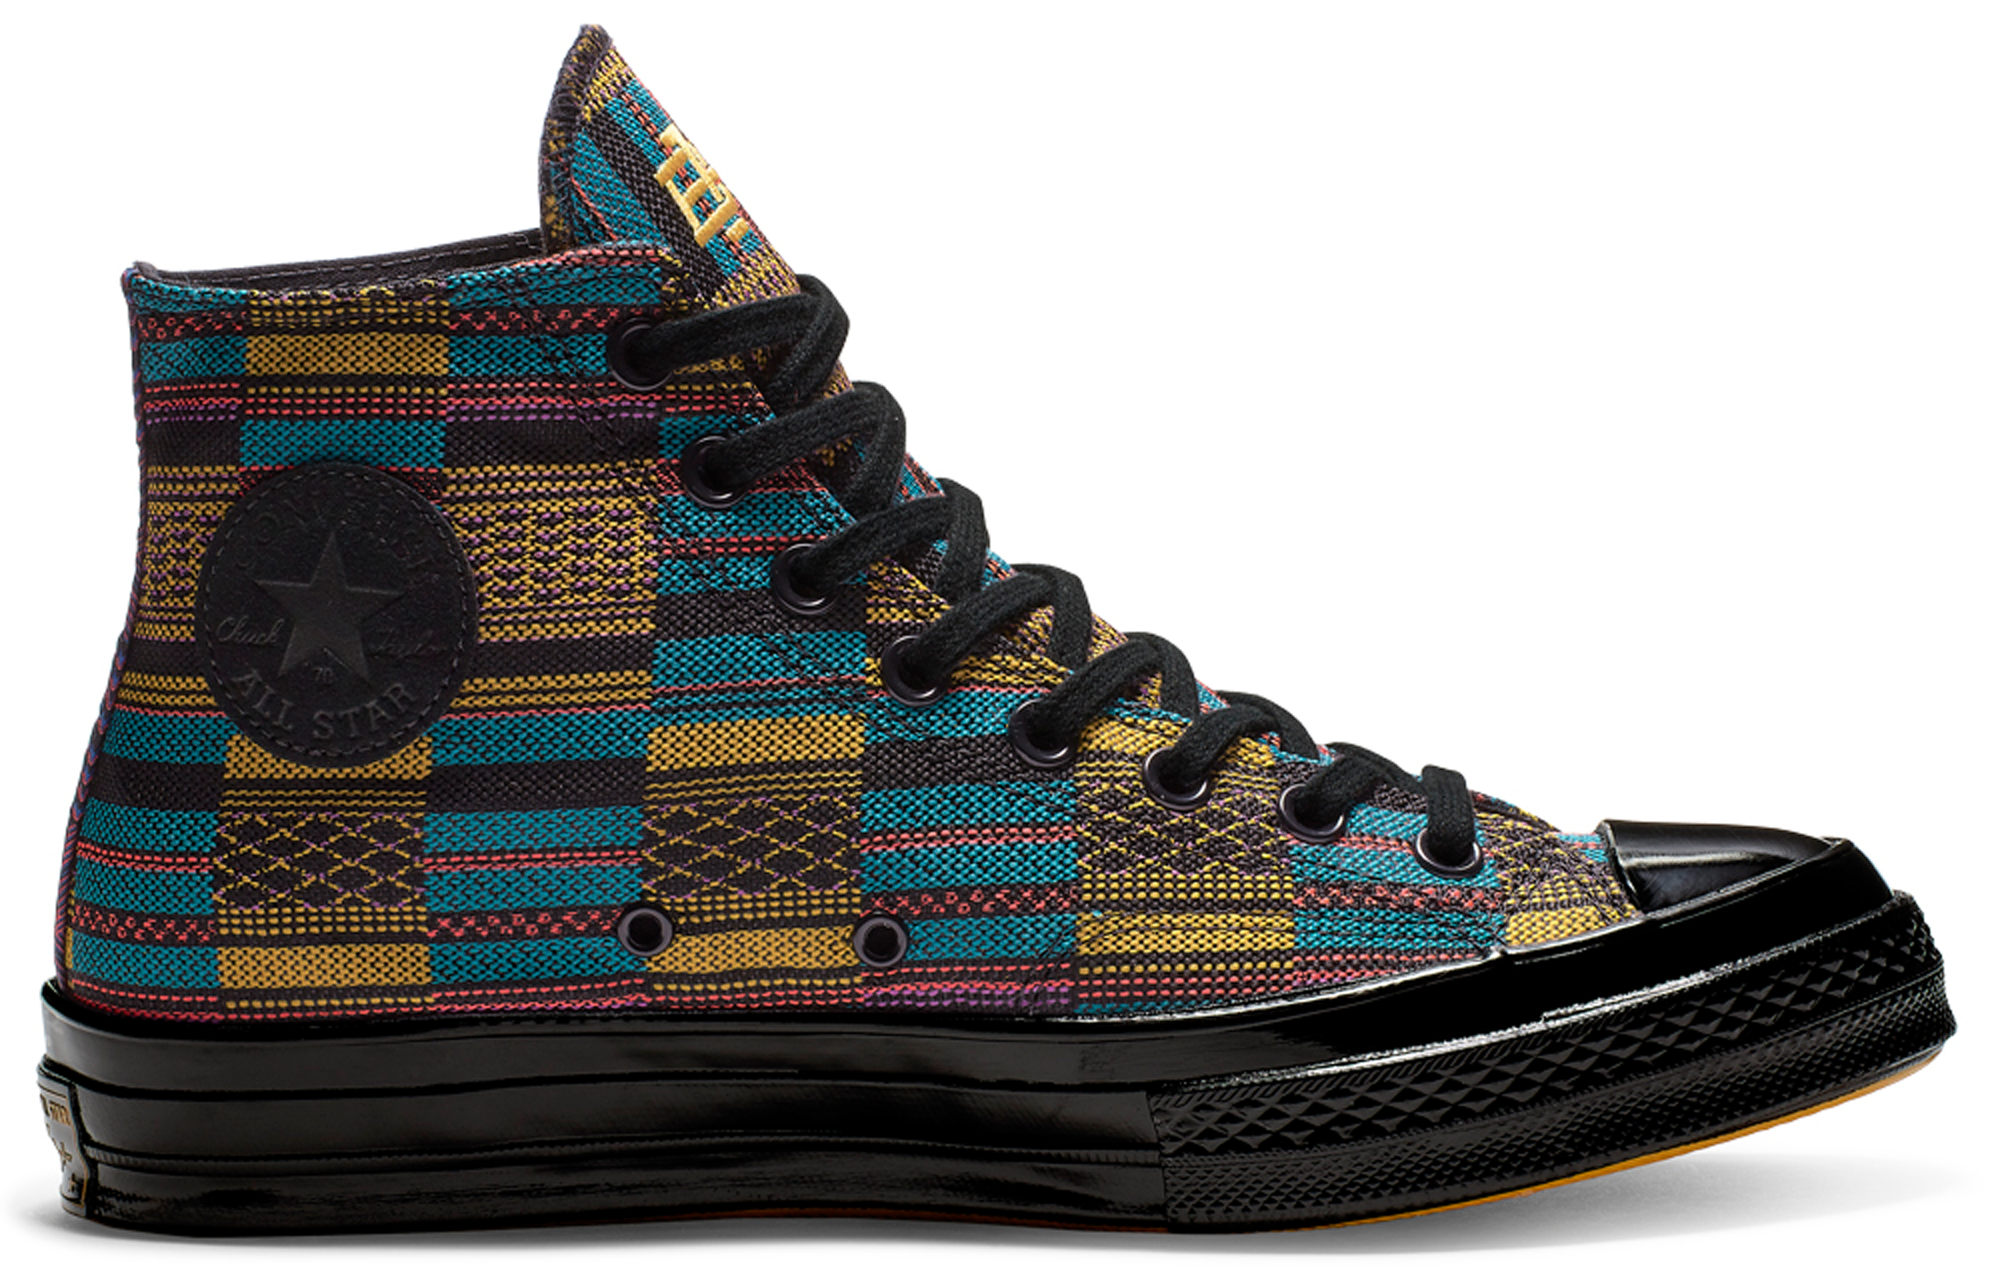 Converse Chuck Taylor All-Star 70s Hi BHM Black/Multi All Over Print (2019)